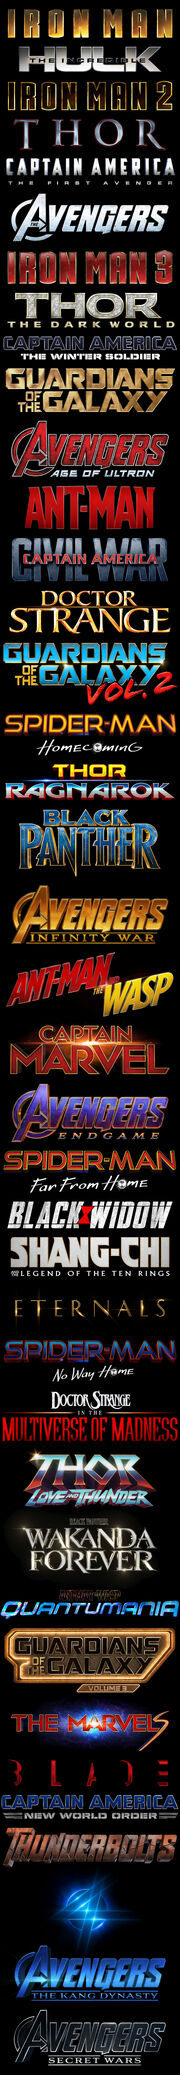 List of Marvel Cinematic Universe films